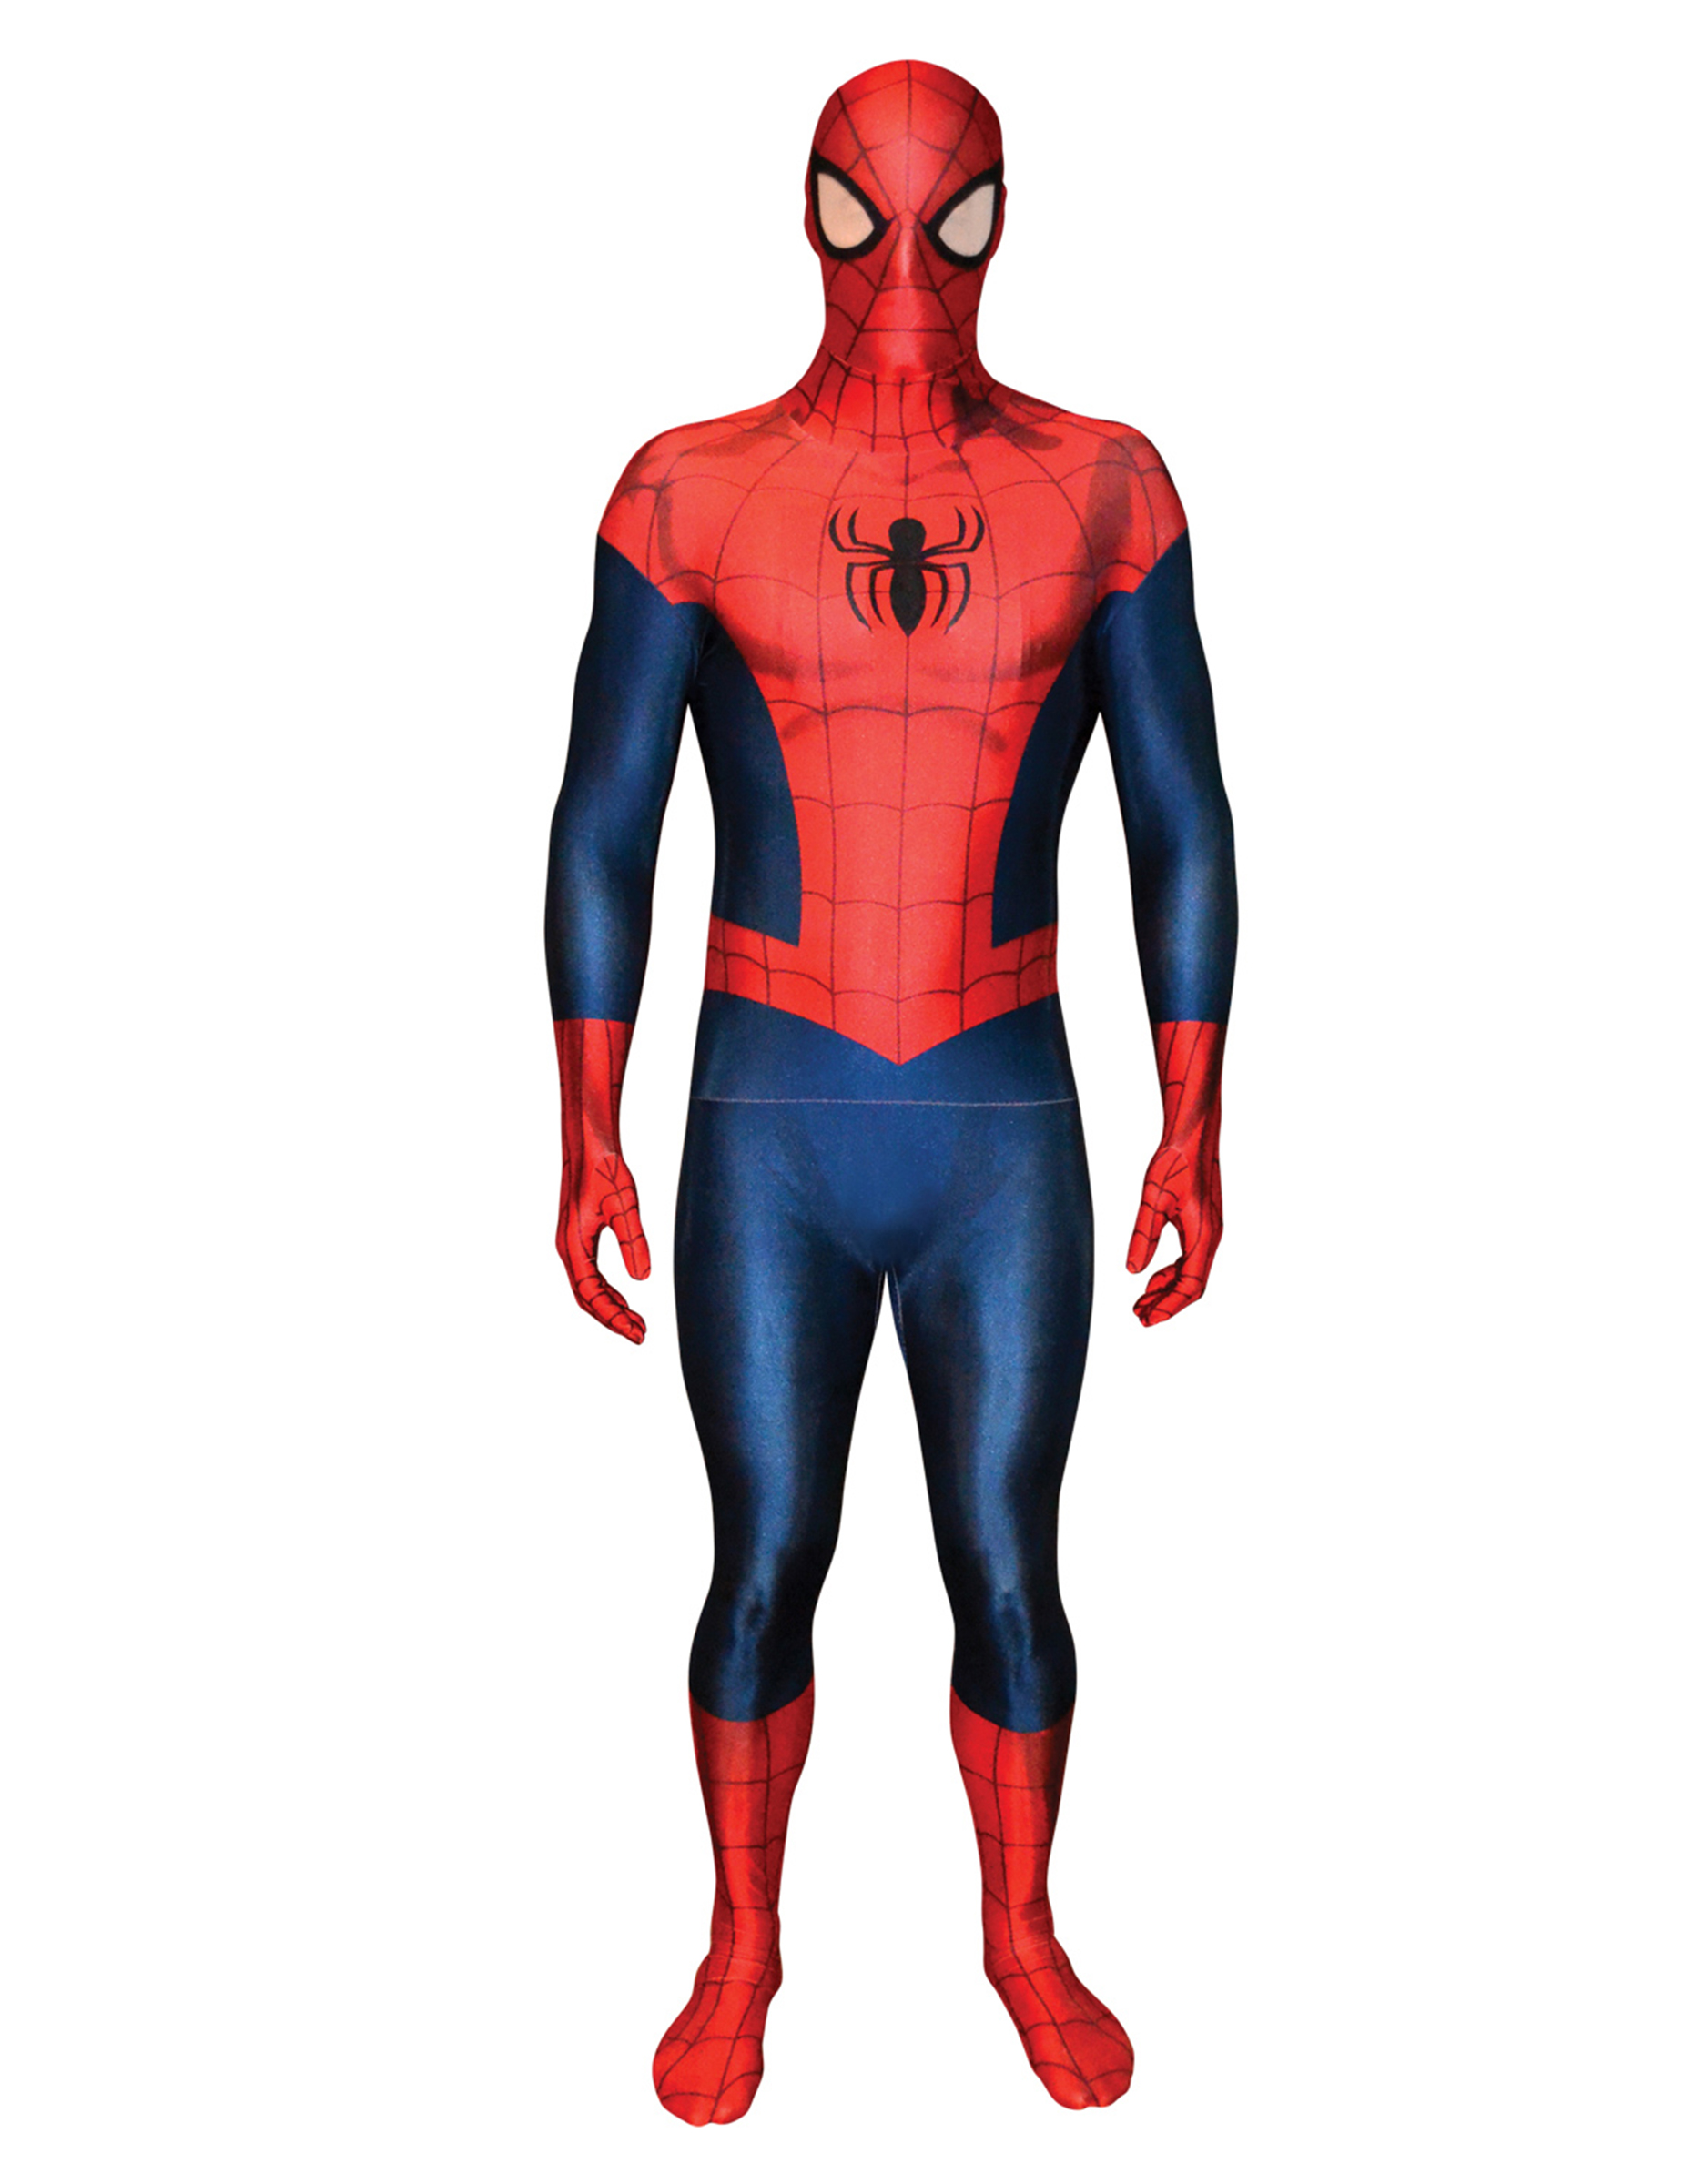 Provide Spider-man Costume for Kids and sofltappreciate.tkman Costumes are best for halloween Cosplay,we provide many styles of spiderman costumes,spider-man sofltappreciate.tk-Man is a very very hot fictional superhero character in the world.